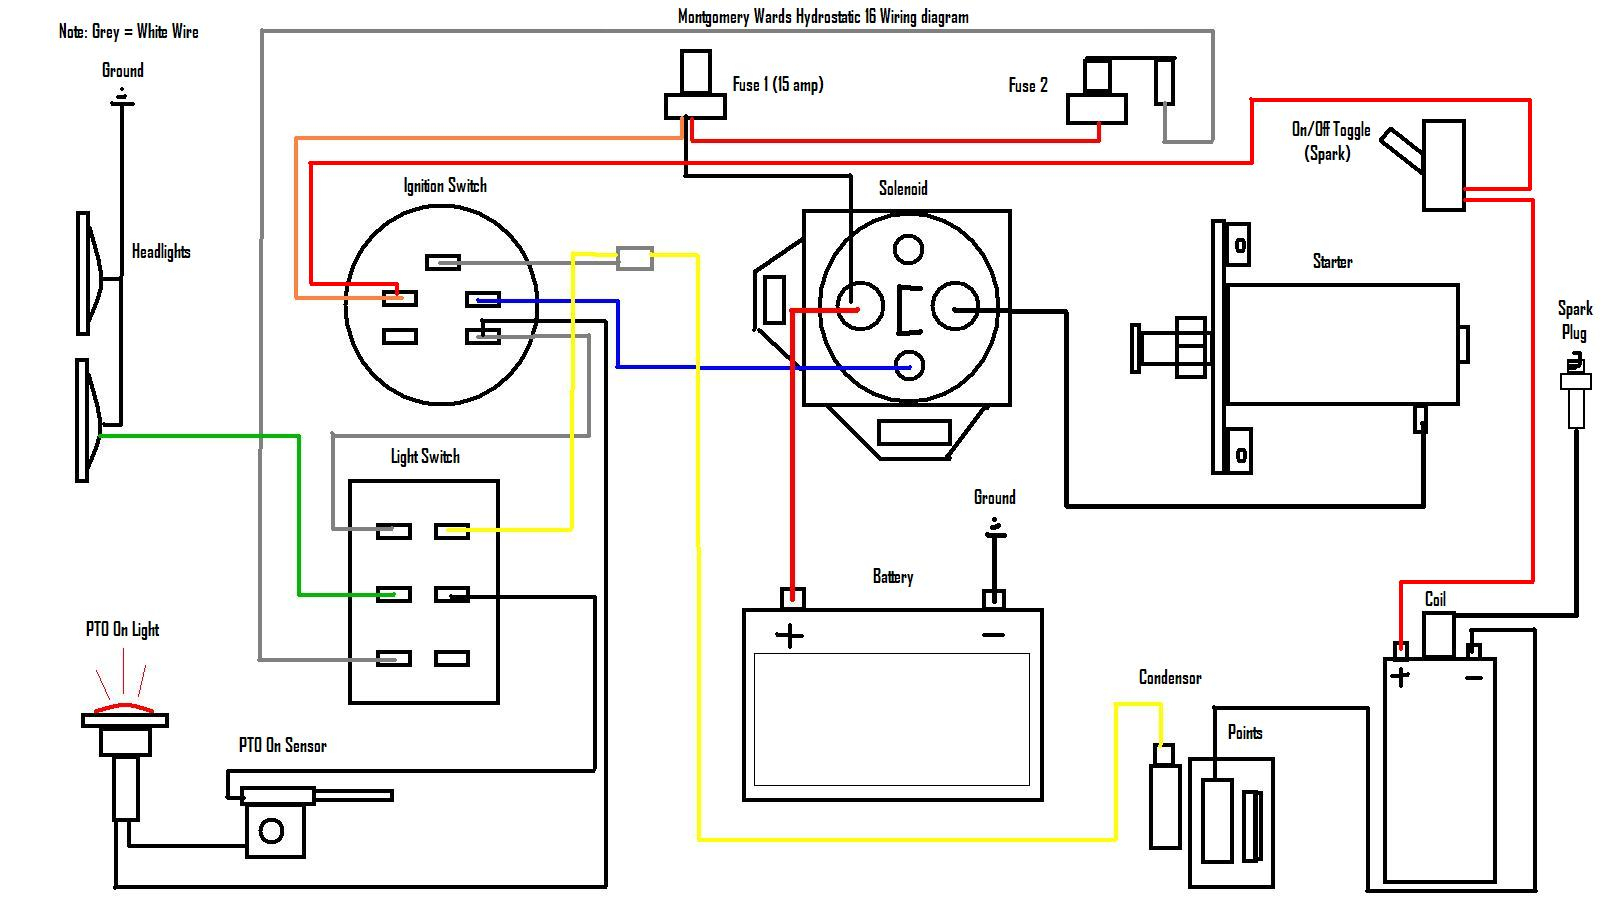 hight resolution of briggs and stratton wiring diagram 18 hp wirings diagram on briggs stratton fuel system diagram vanguard motor